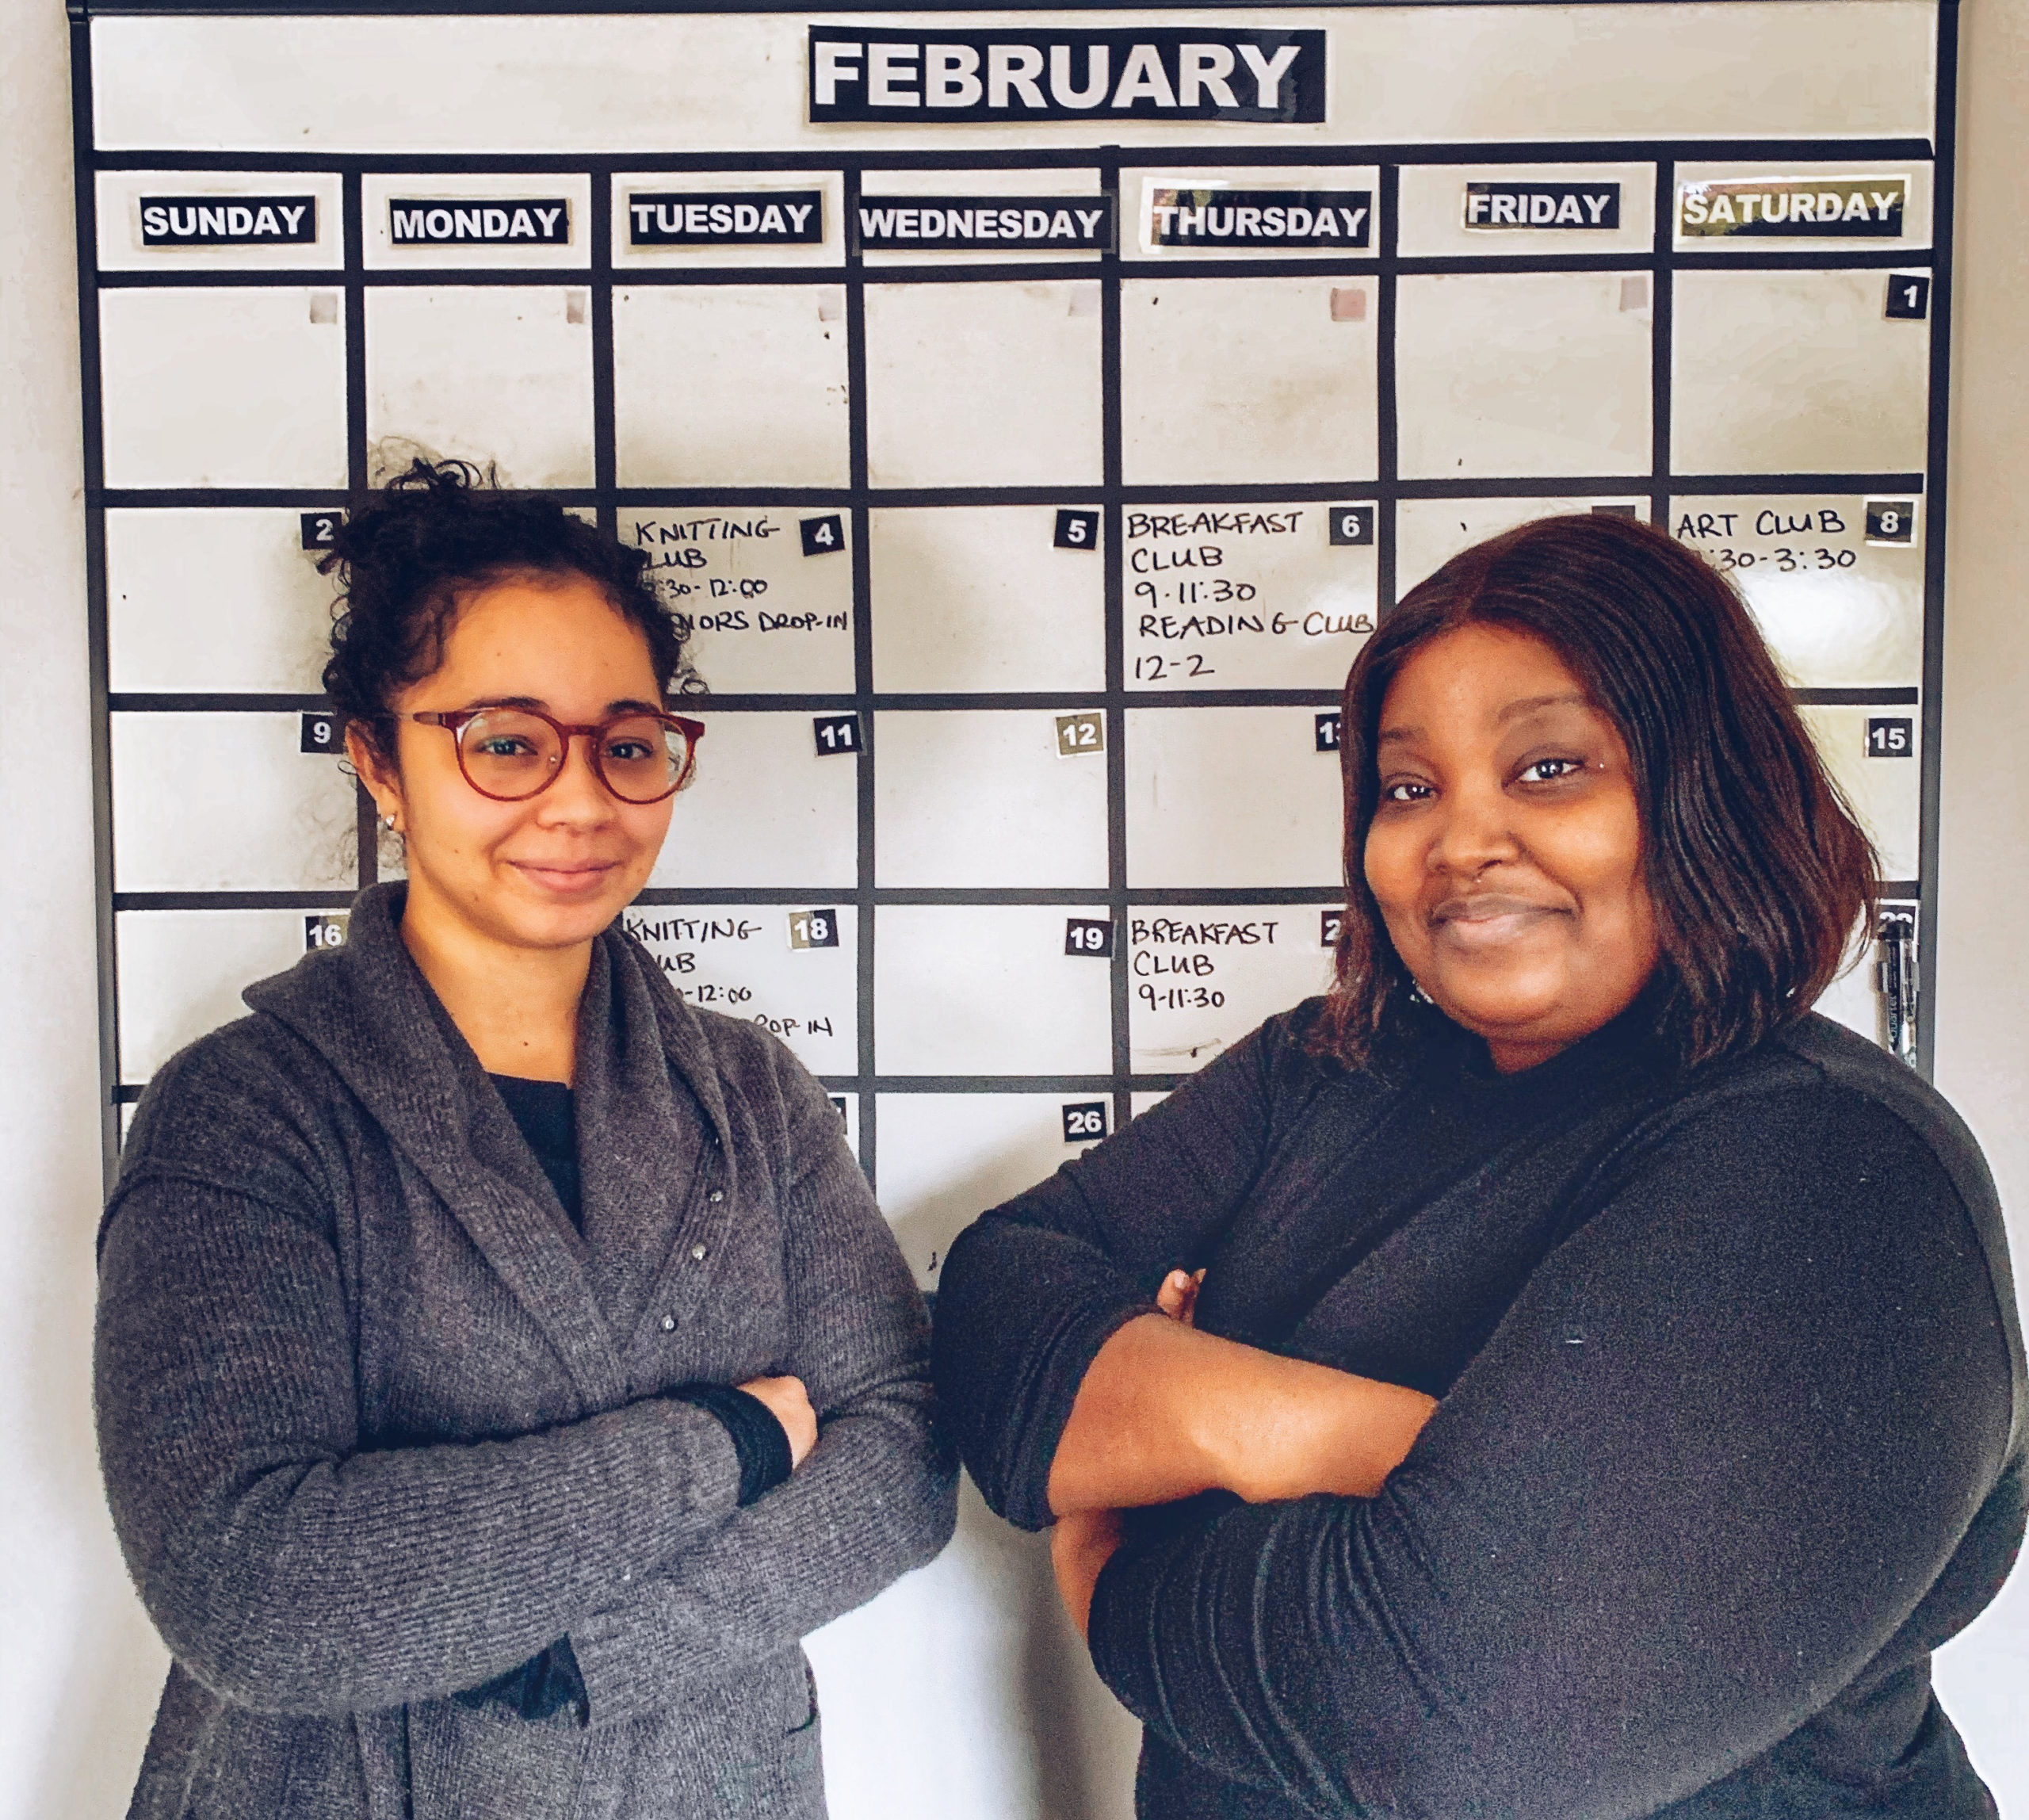 Susan & Deza are placement students at George Brown College